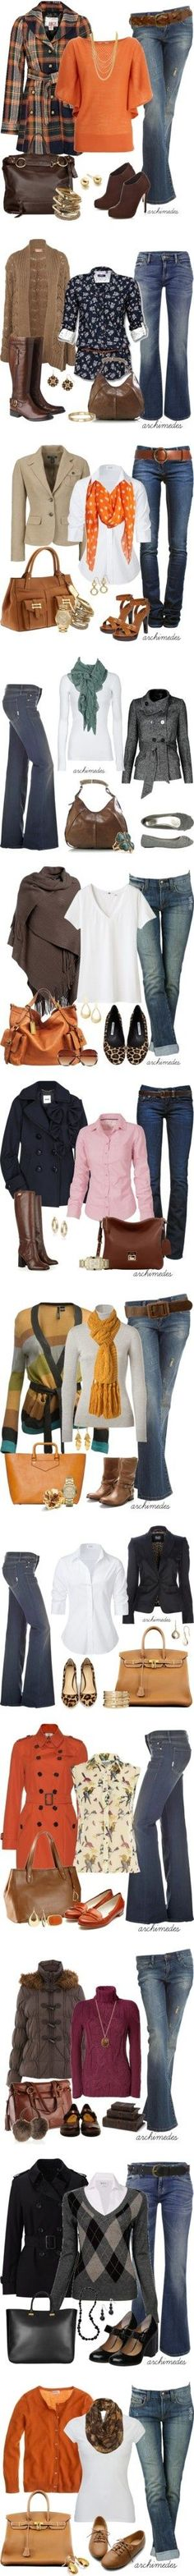 Some great outfit ideas for Autumn fashion - suitable for the over 40s